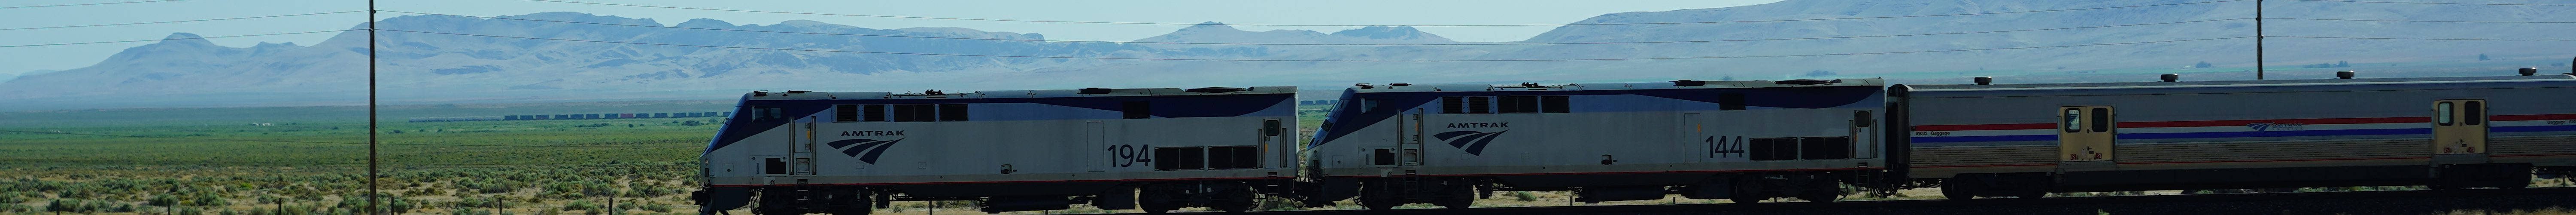 Amtrak Review California Zephyr